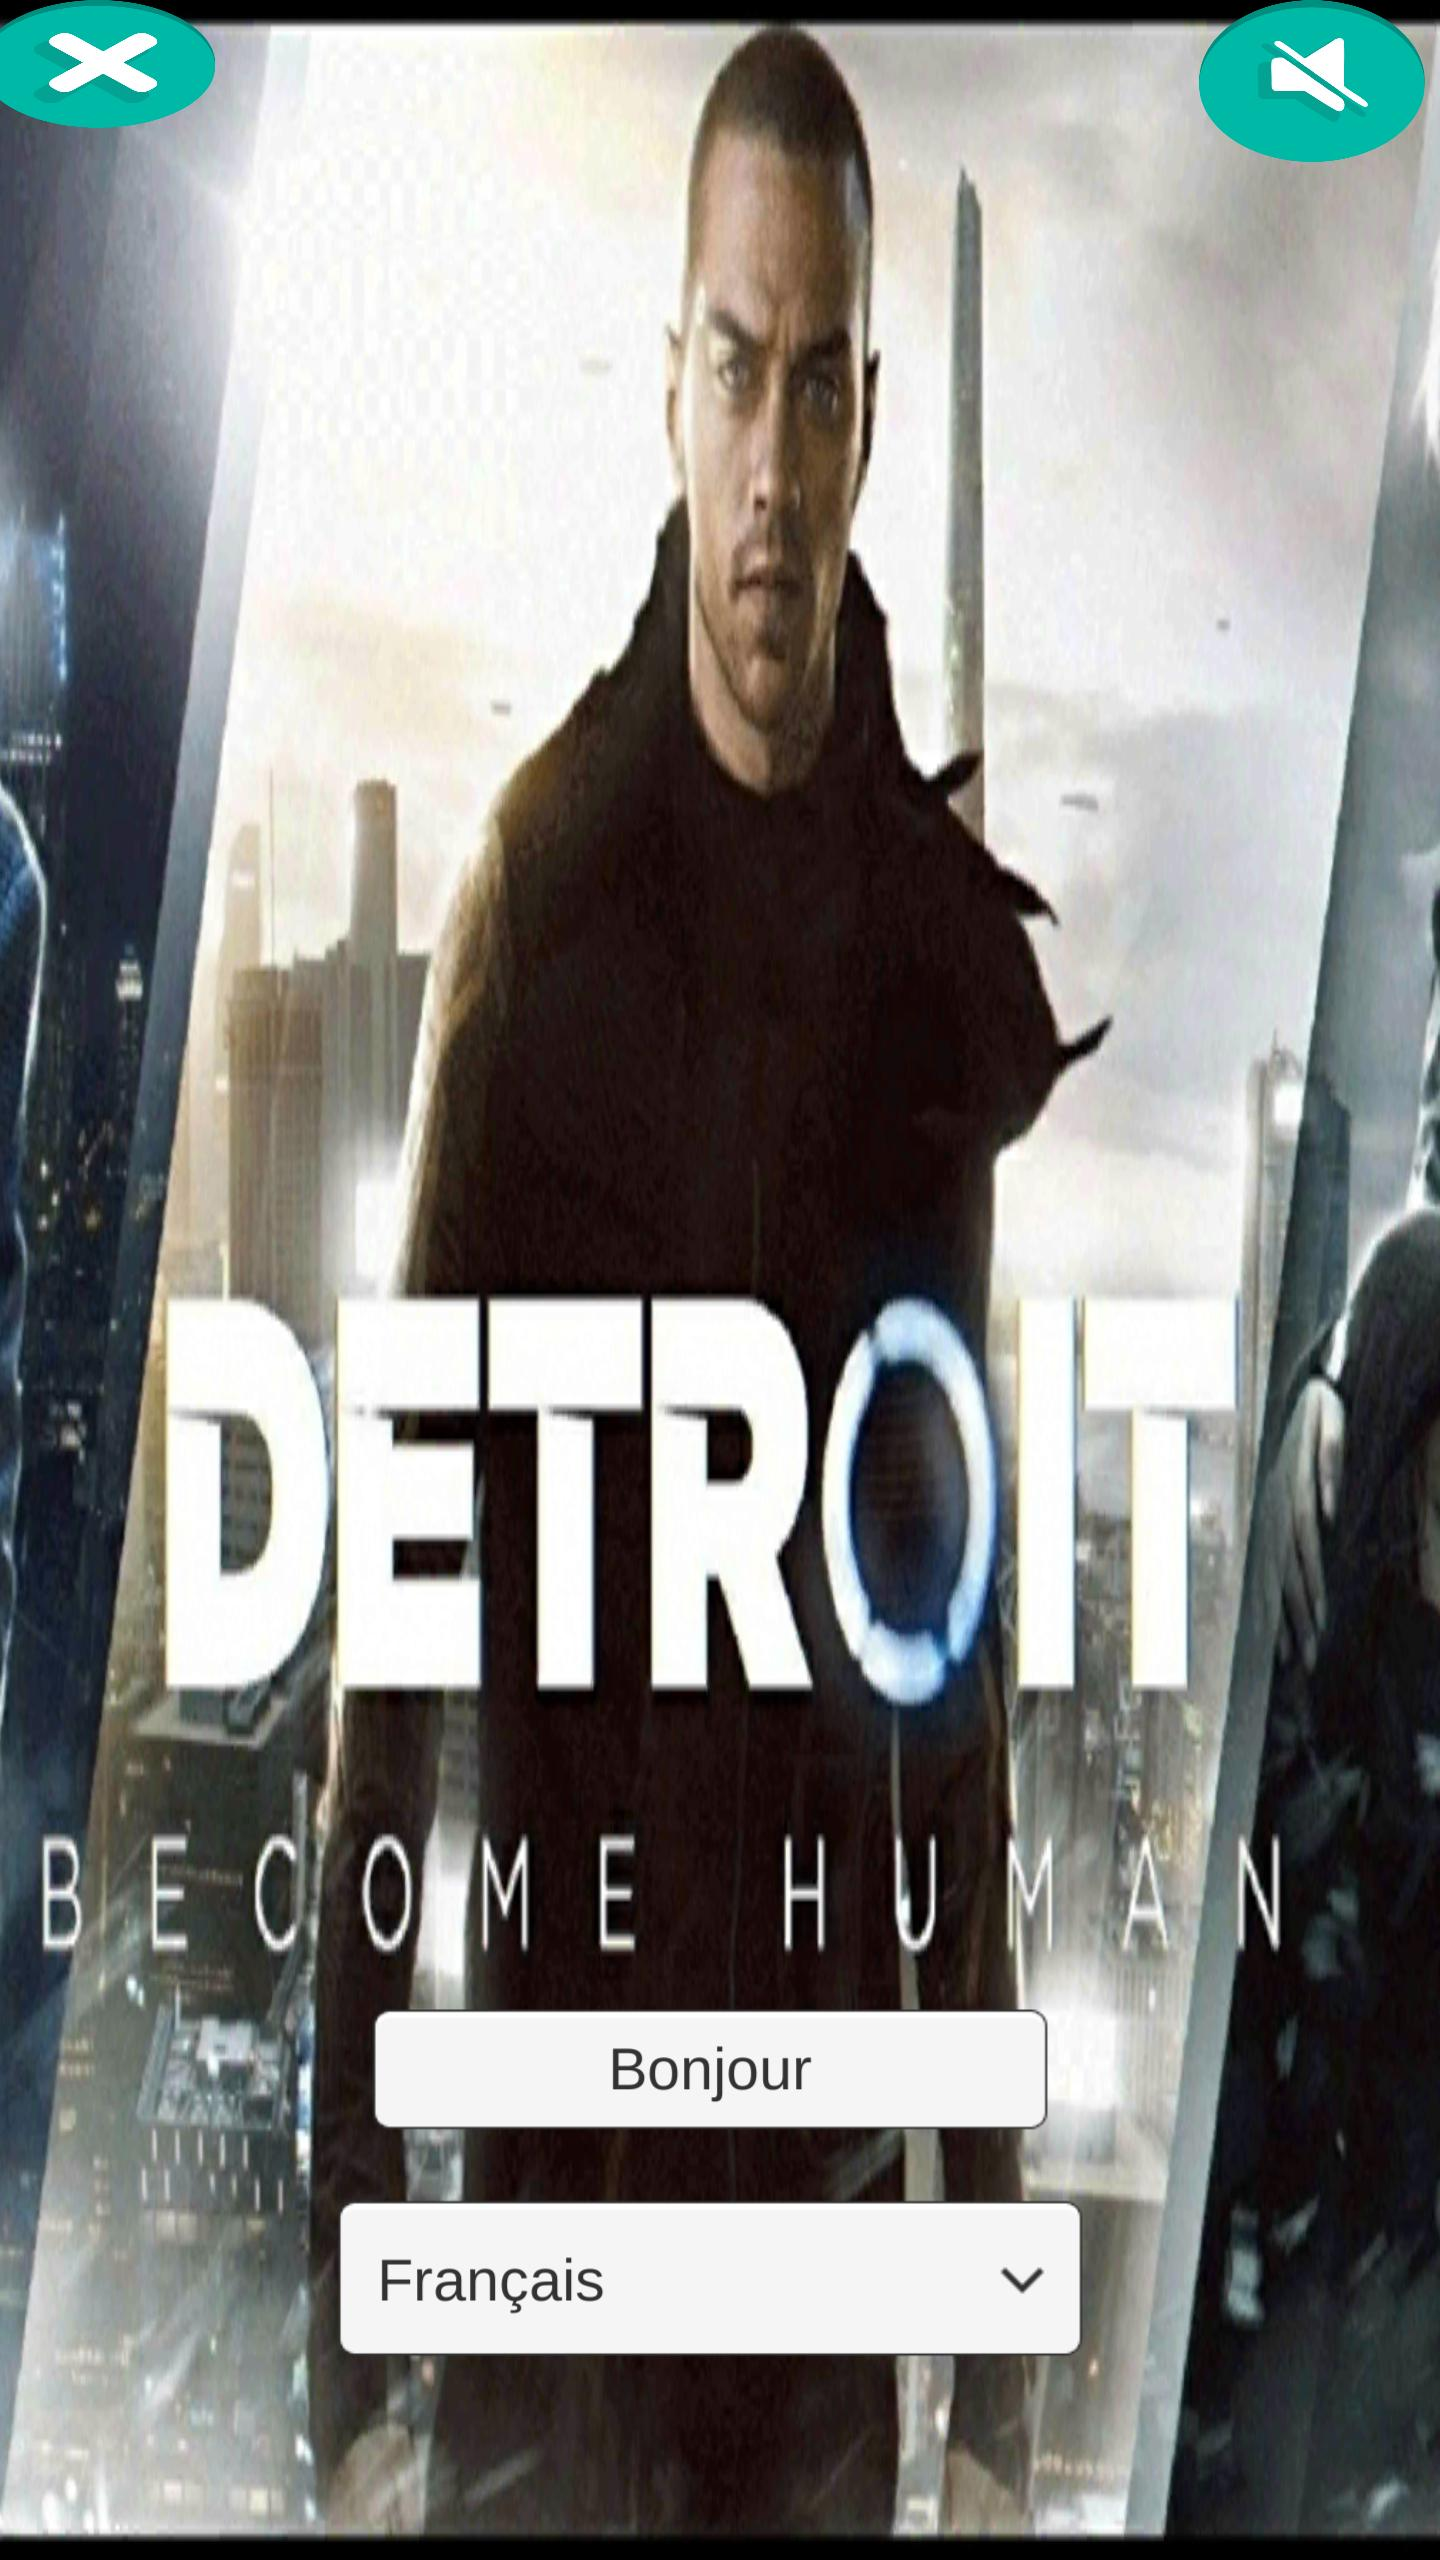 Detroit Become Human soundbox, My name is connor  for Android - APK